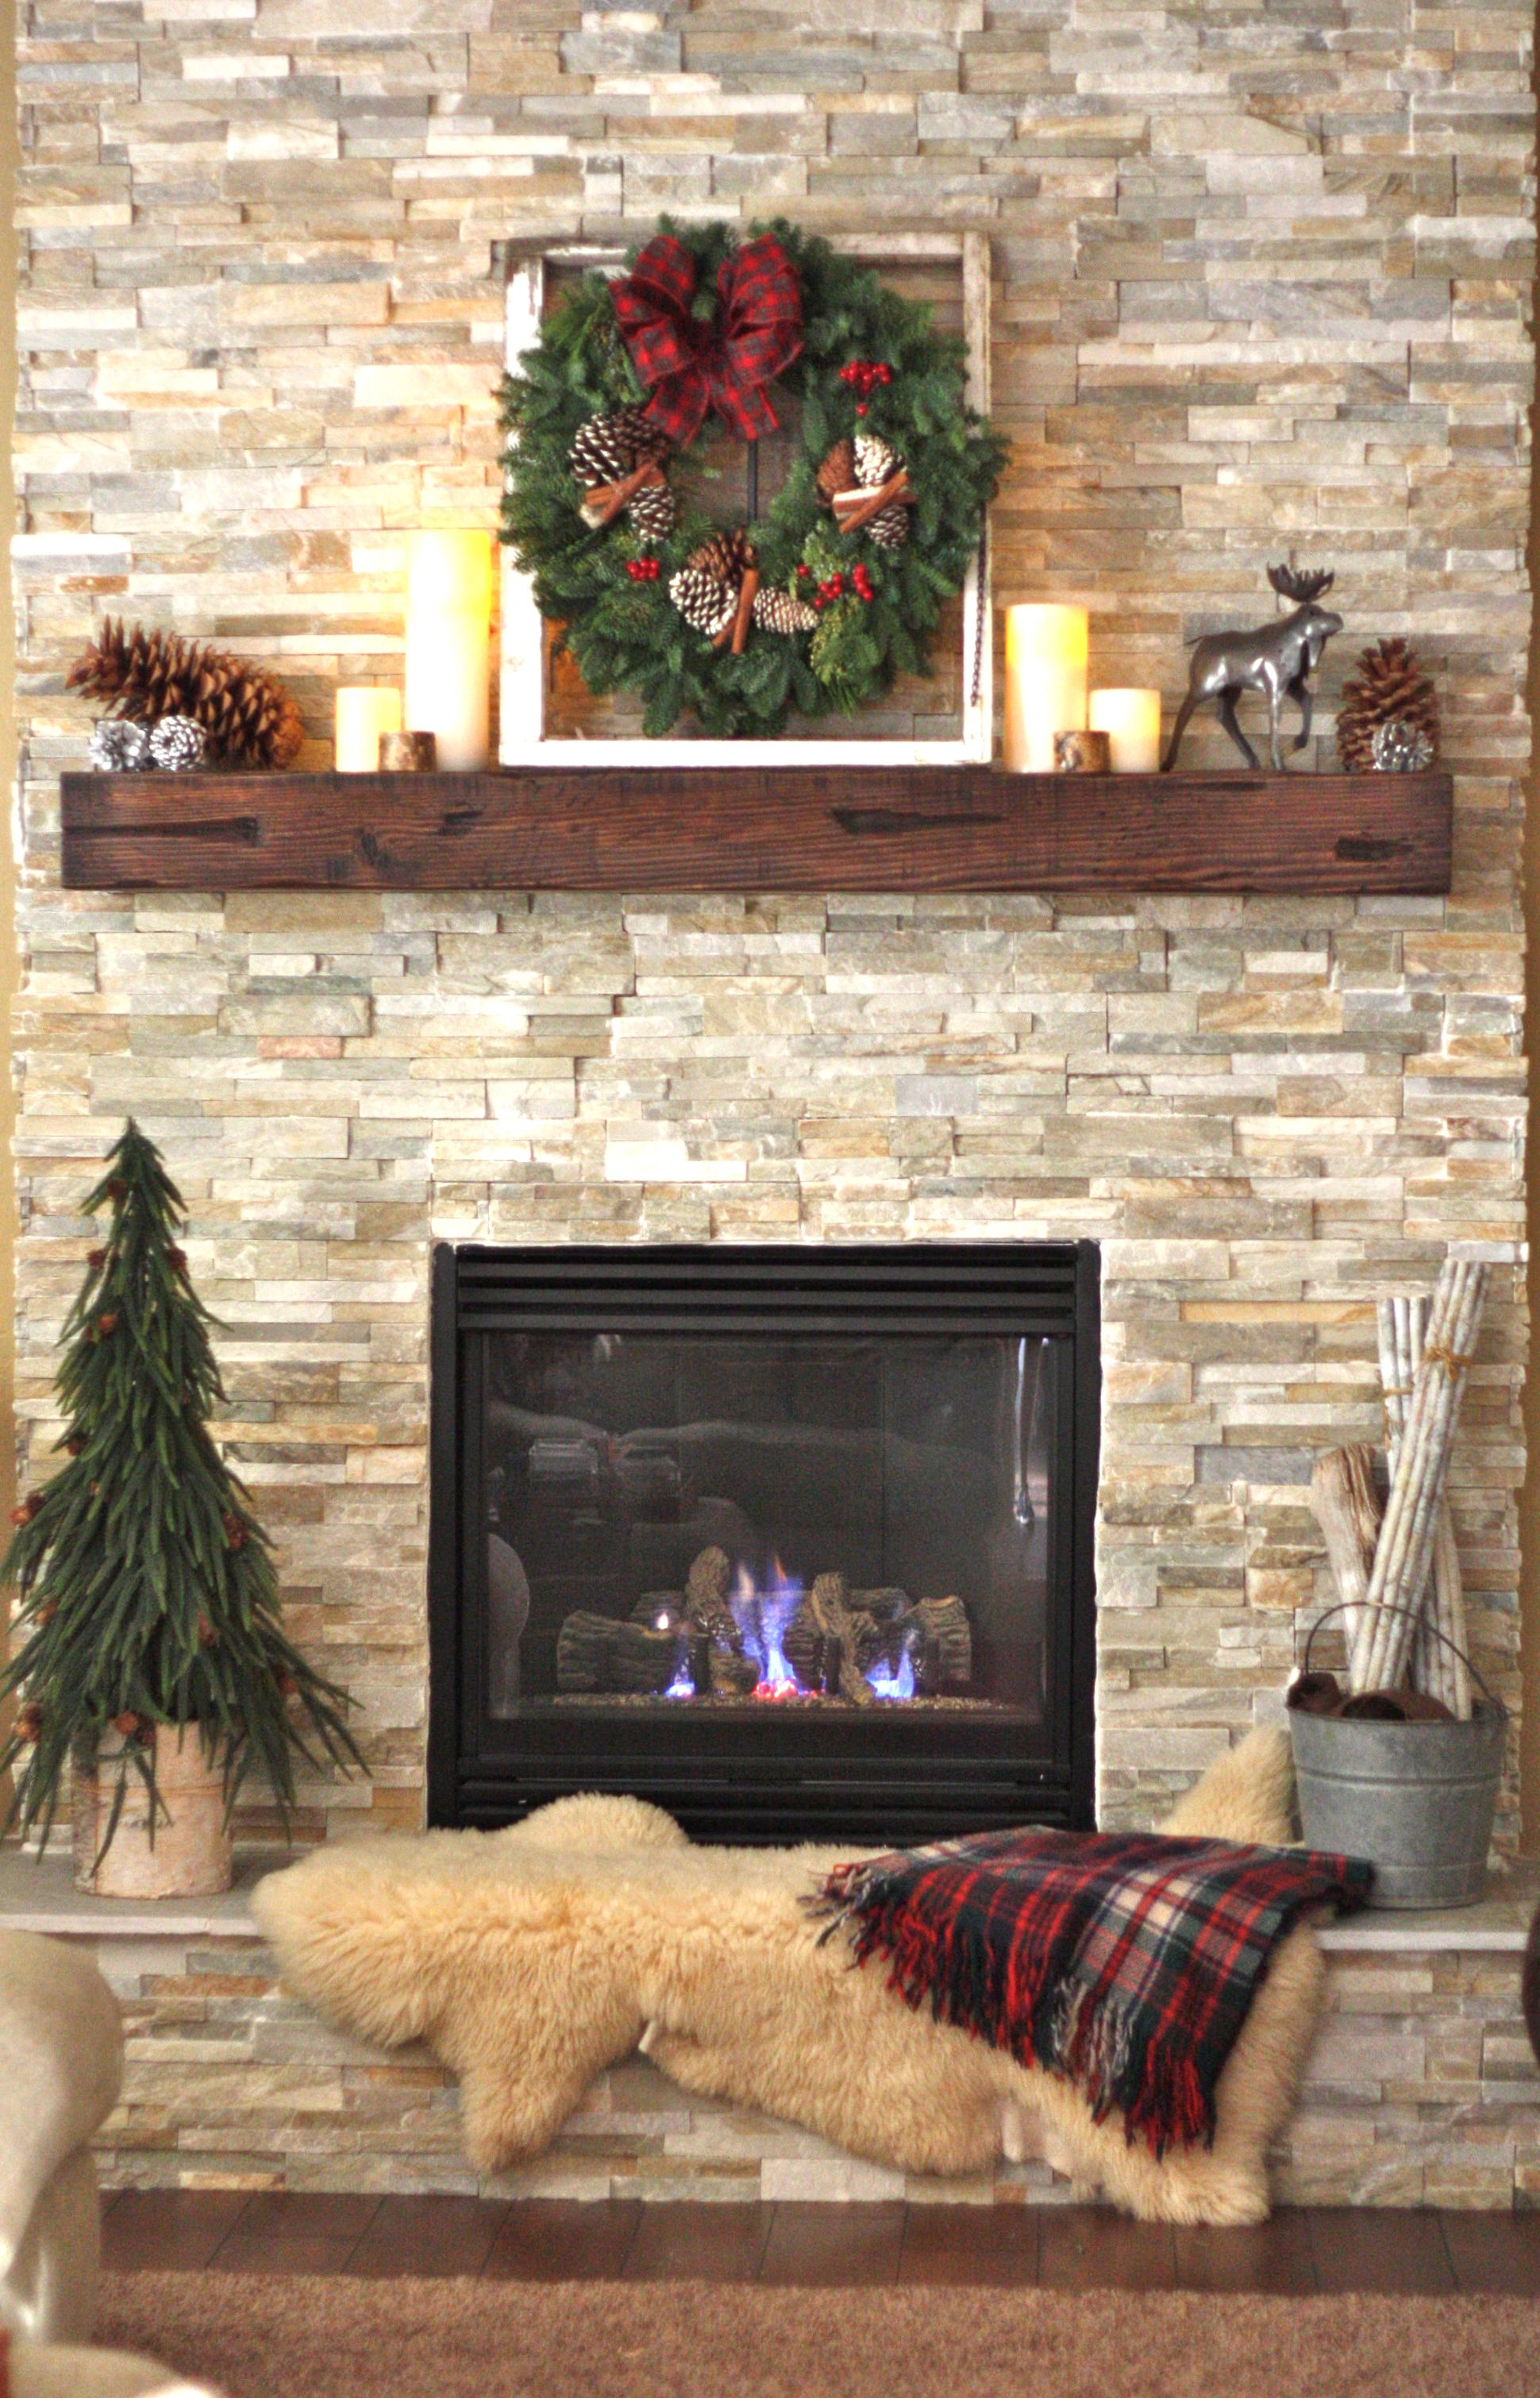 Id like to have a mantle installed on my brick fireplace wall